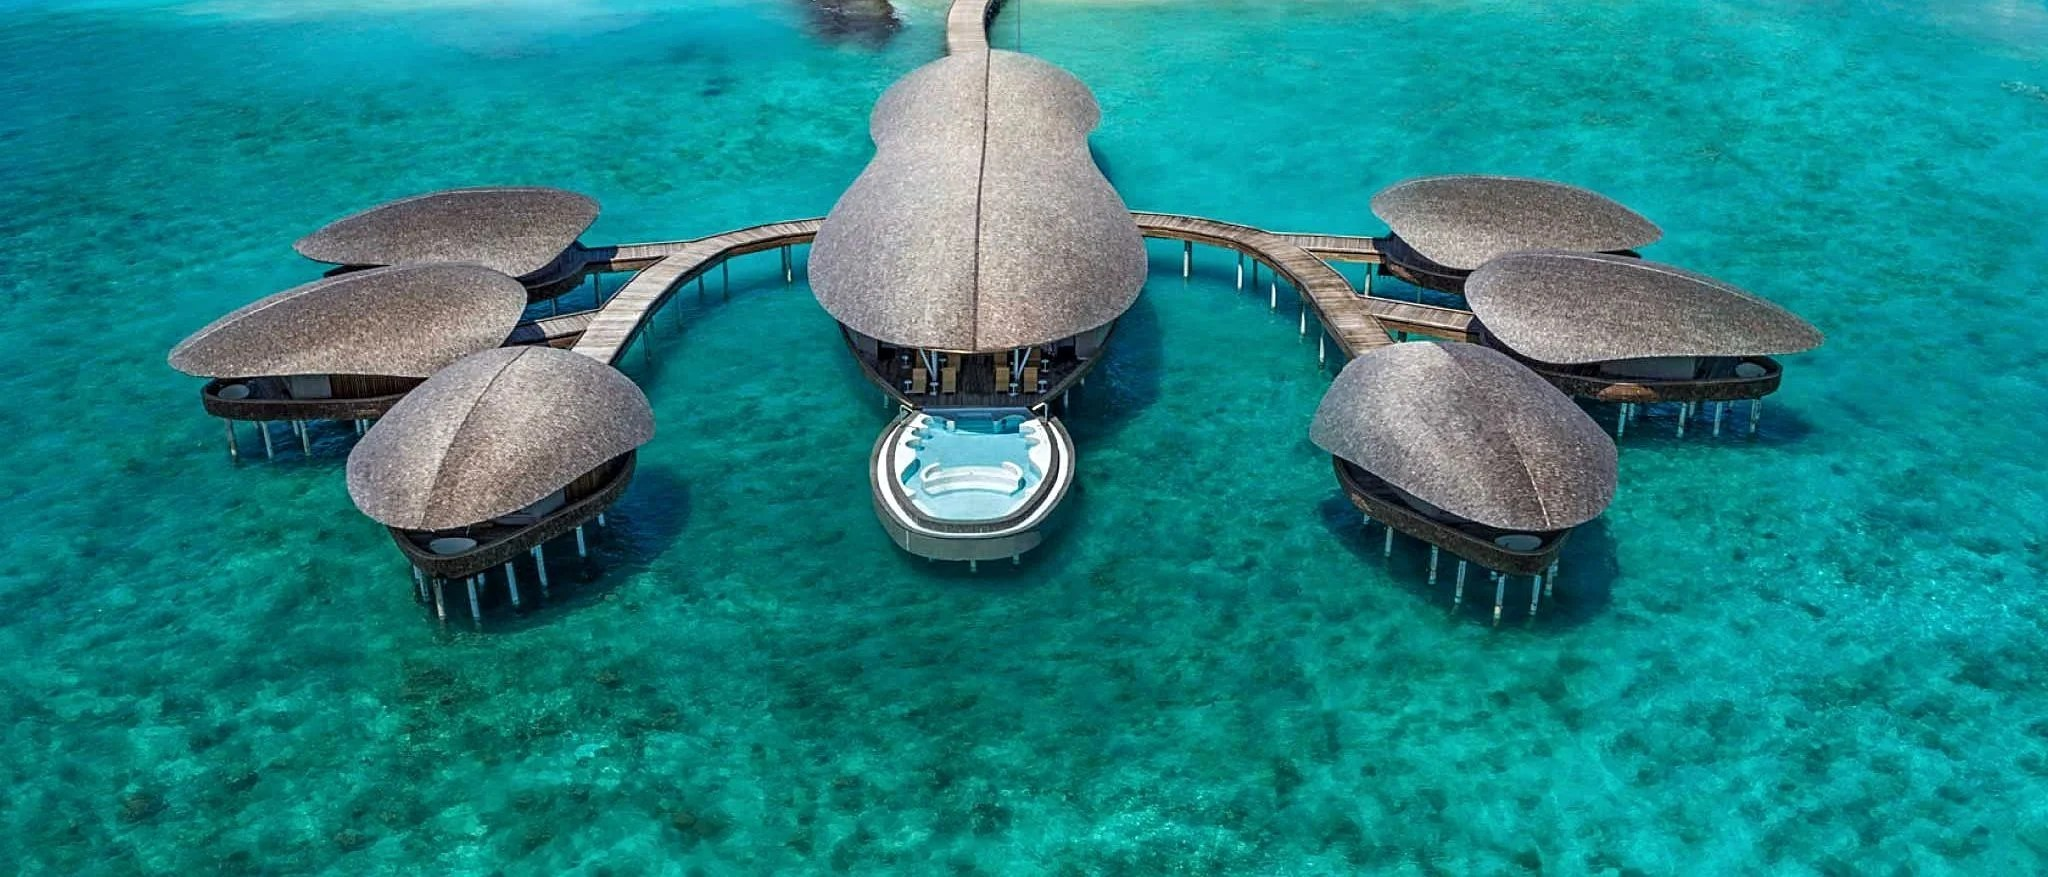 The Best Award Availability at the St. Regis Maldives We've Ever Seen